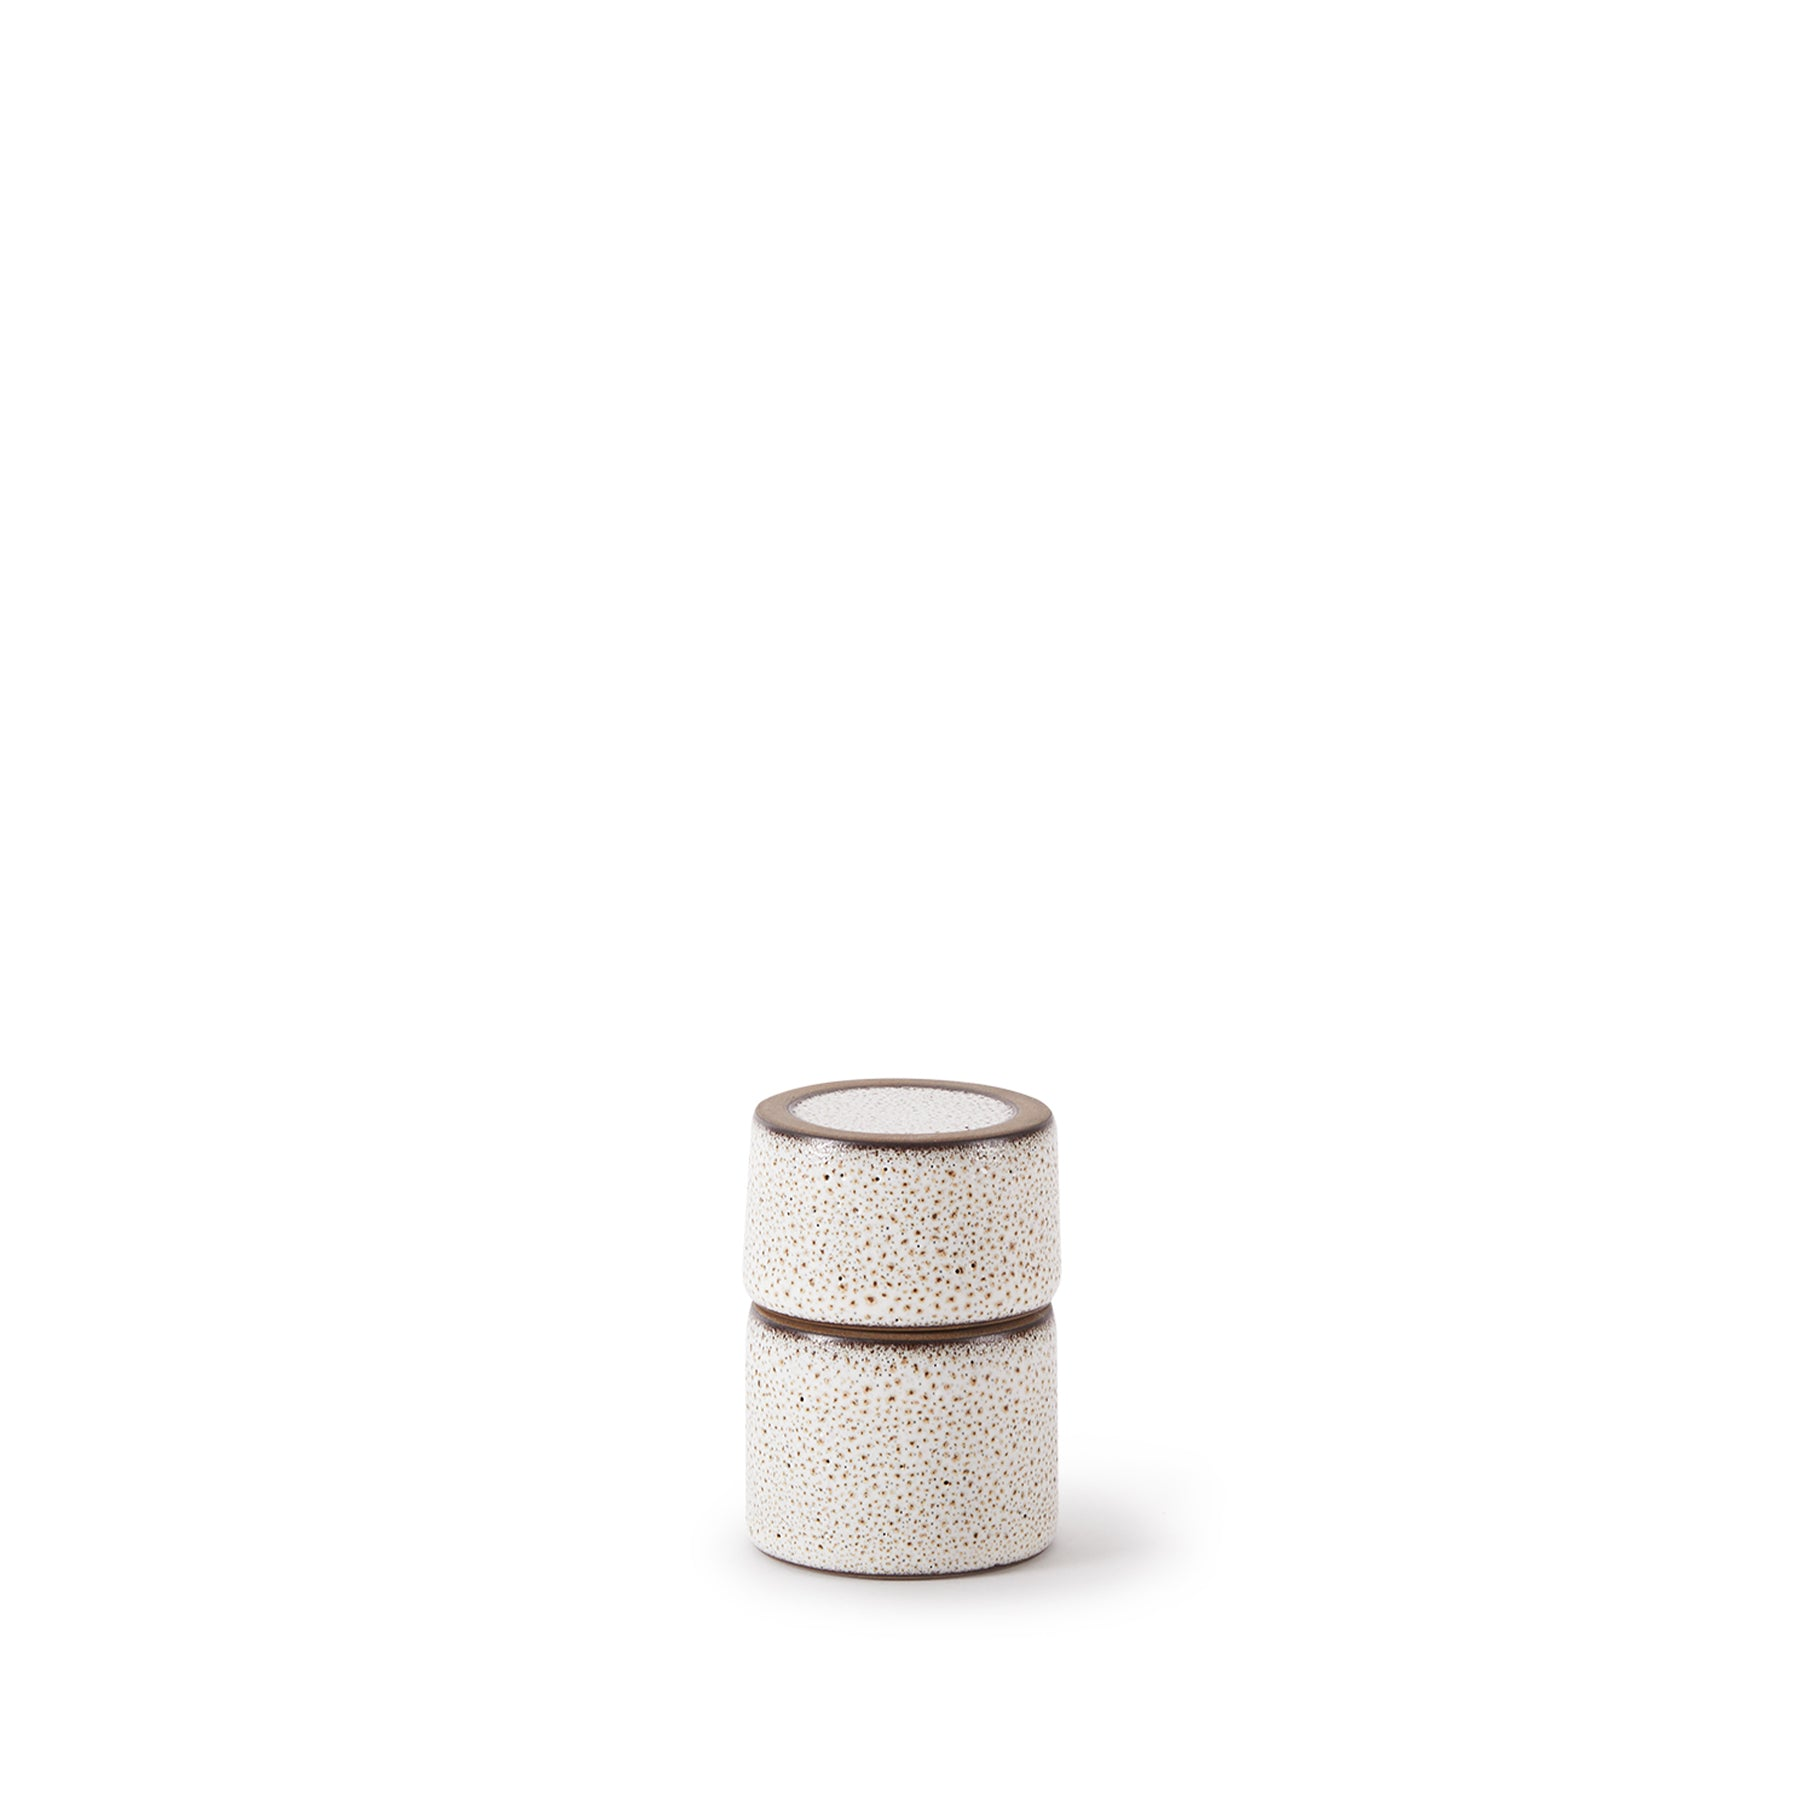 Matchstick Holder in Opaque White and Matte Brown Zoom Image 1